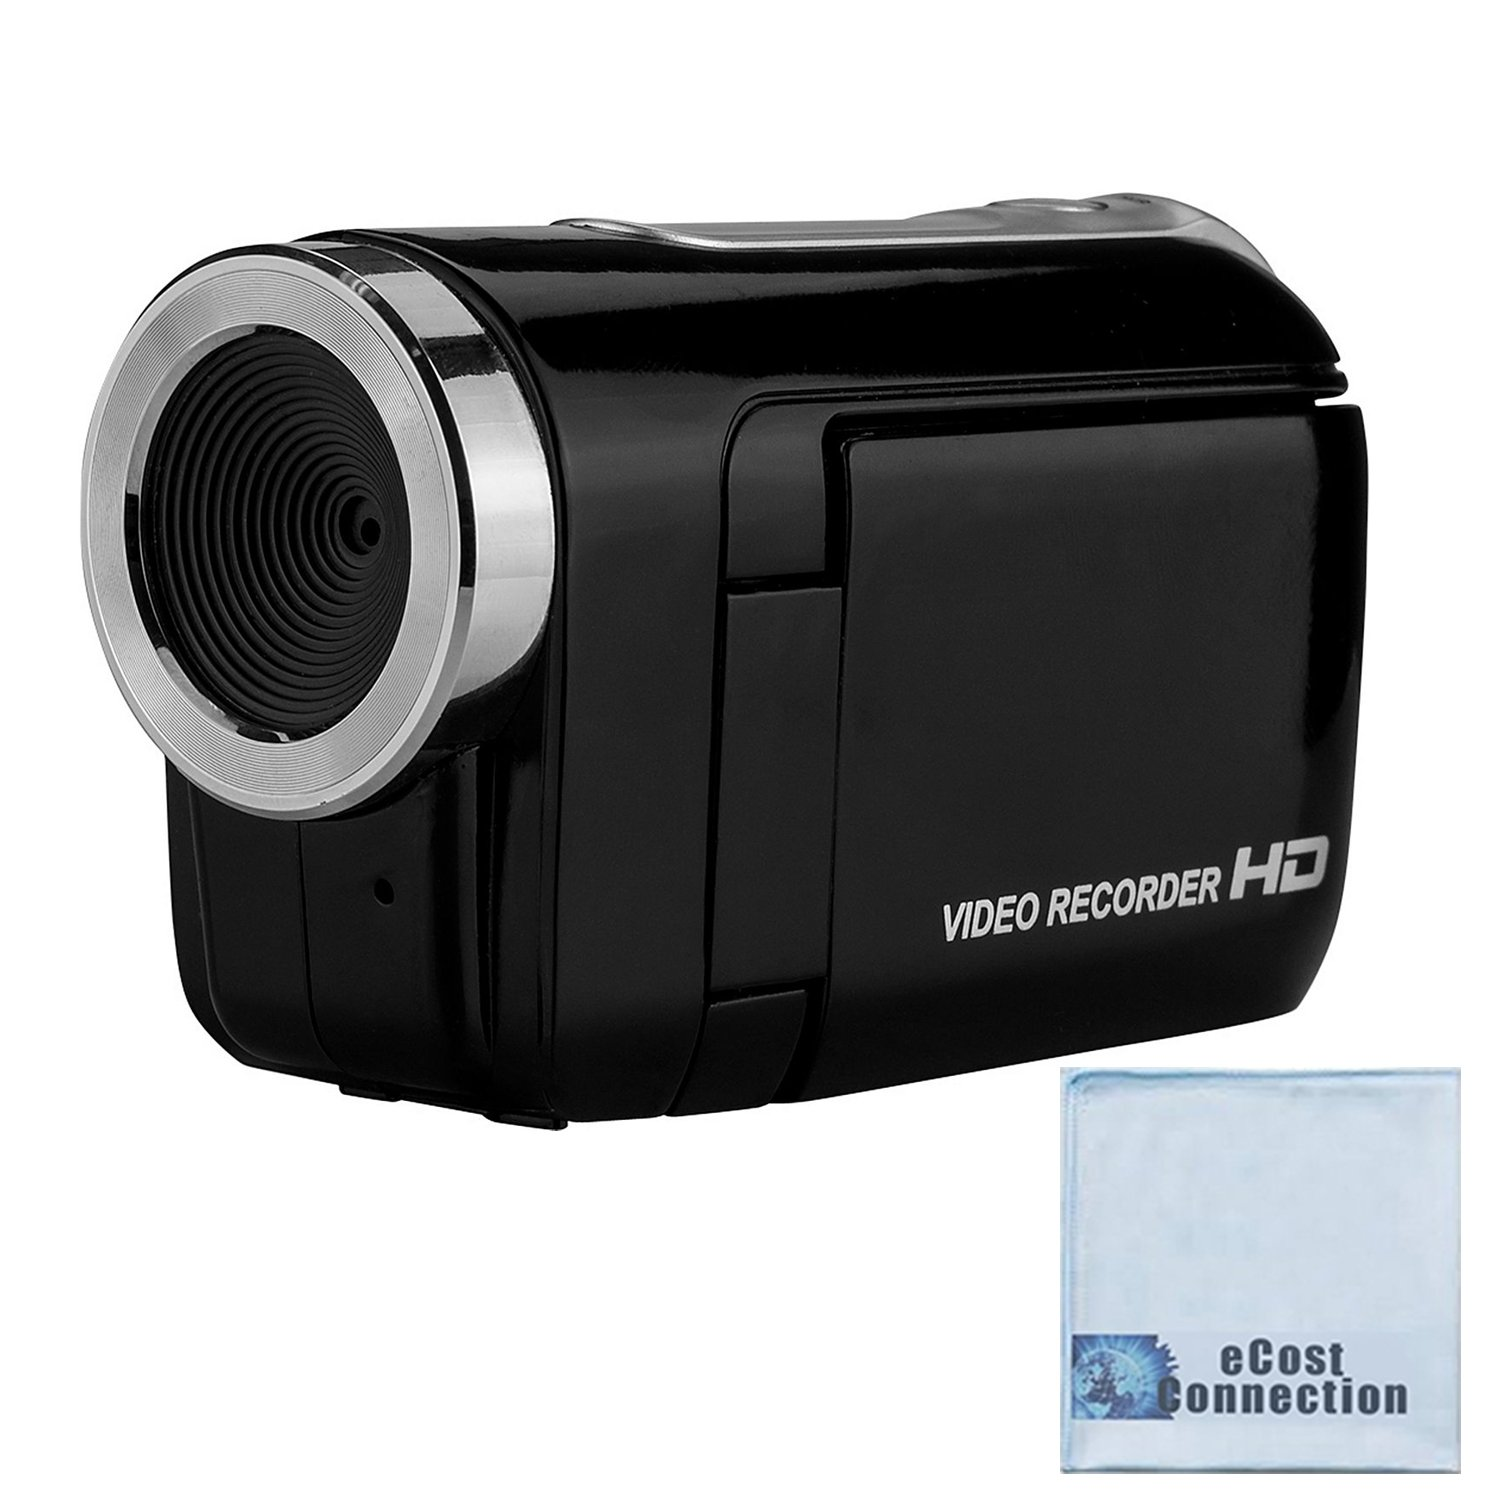 720P HD Compact Camcorder with 1.44'' Screen, Easy Editing Software CD & eCostConnection Microfiber Cloth